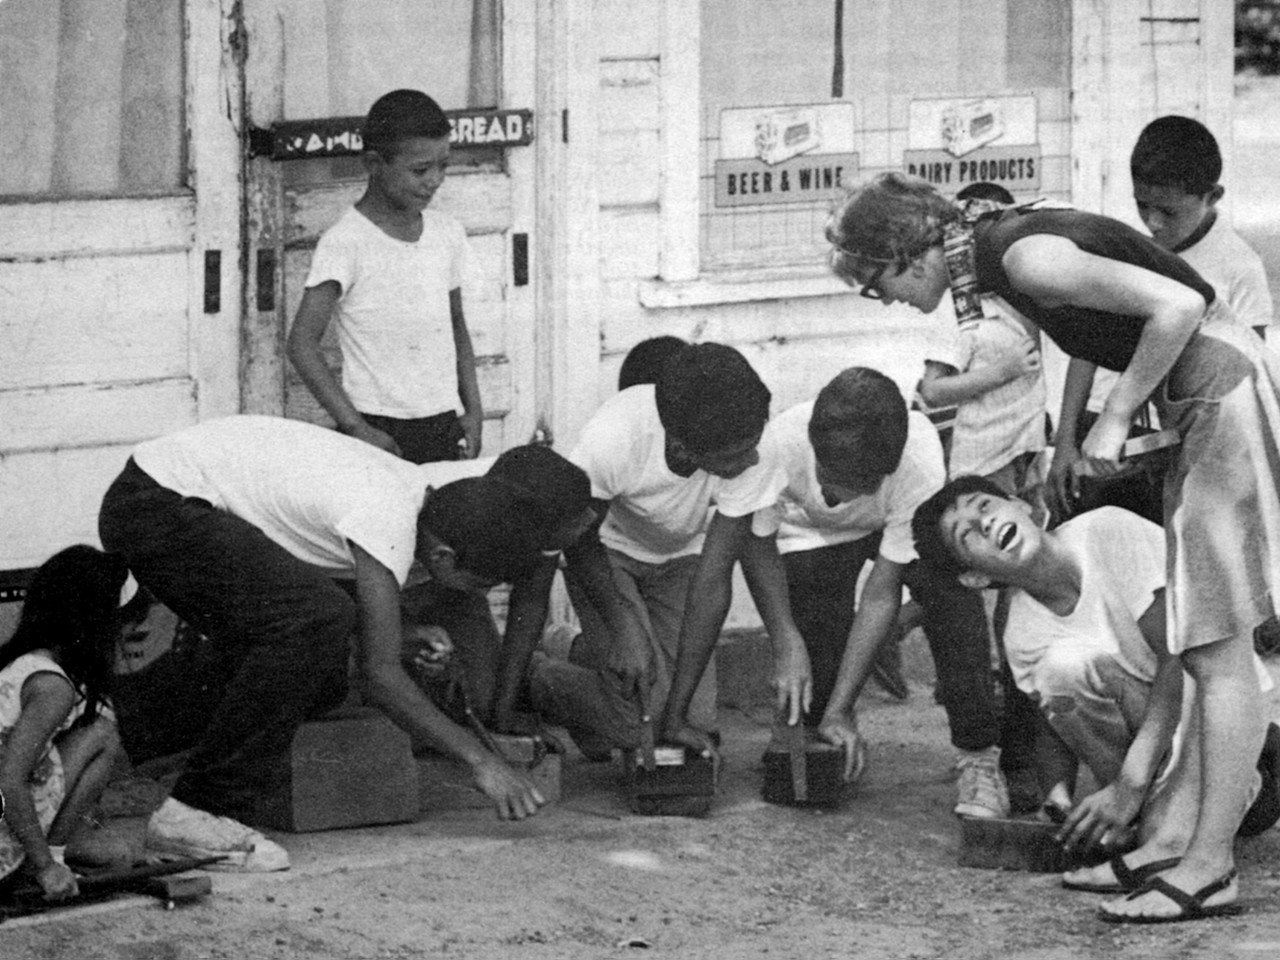 Lucy Norman gathers with a group of Mexican-American youngsters in front of a converted grocery store that has been her home since she began her VISTA assignment in February 1965 in a colony of migrant workers in California. Lucy is helping the boys realize their ambition for a community center. She also organizes English classes for preschoolers and helps their parents obtain public services available to them. (© 1965 Corporation for National and Community Service- Office of Public Affairs)